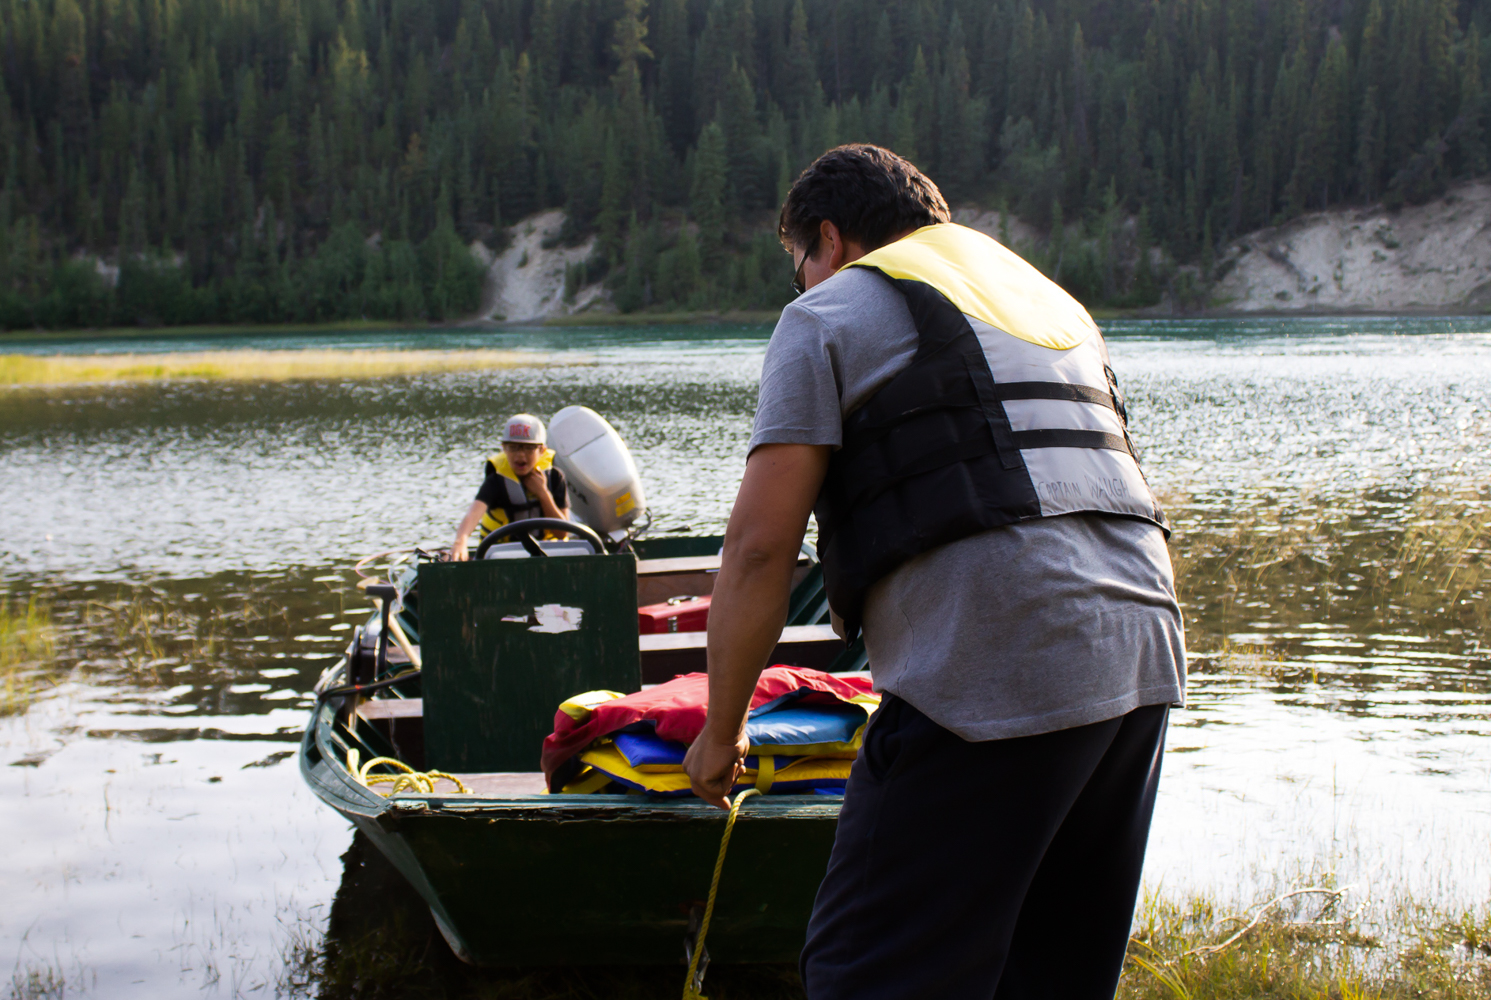 Charles Waugh pushes his family's boat off the dock. They are going out onto the Yukon River to check their net for salmon. Photo by Kiera Kowalski